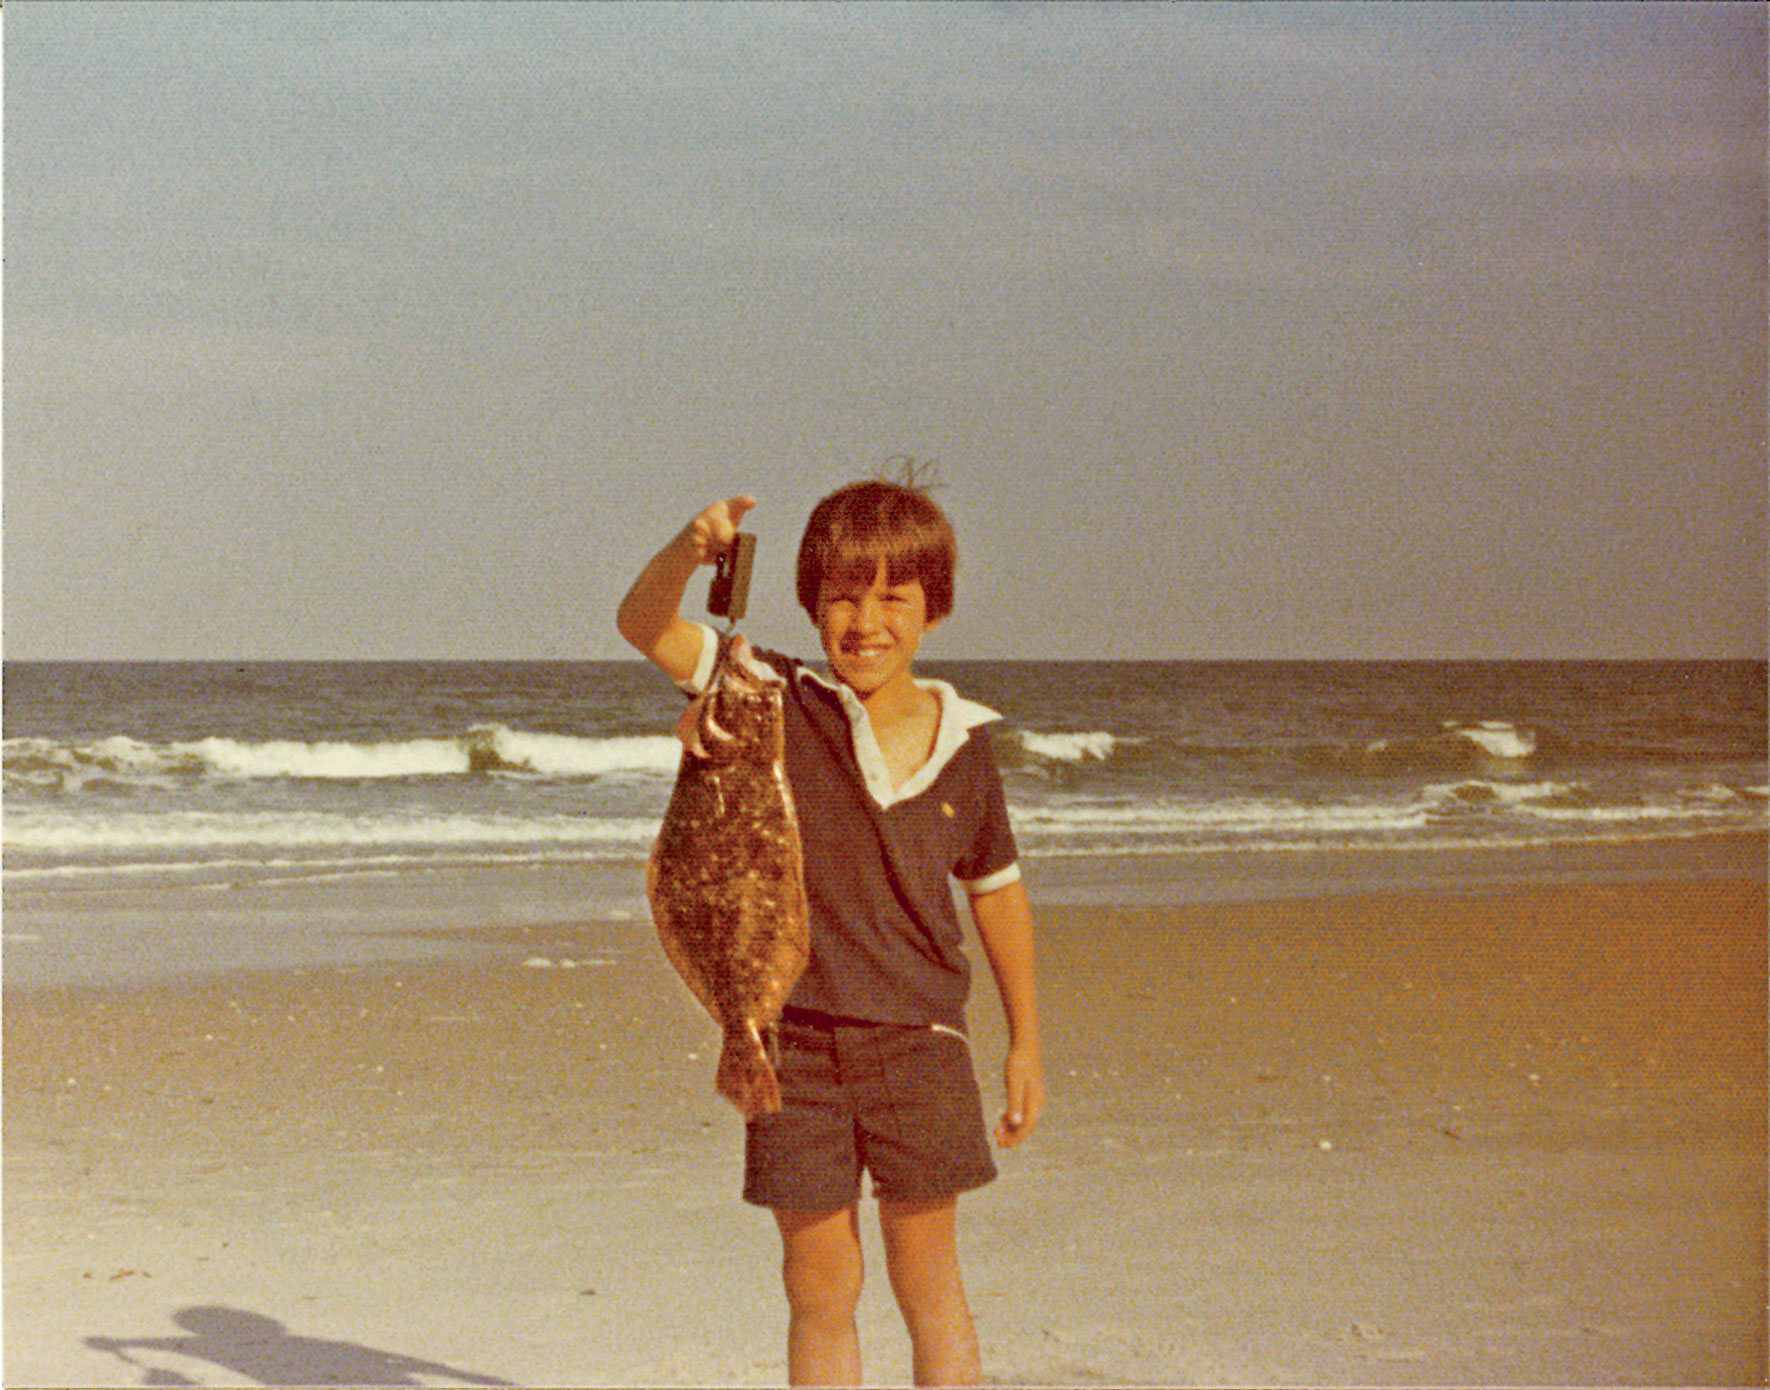 Sid Evans with Flounder on Pawleys Island